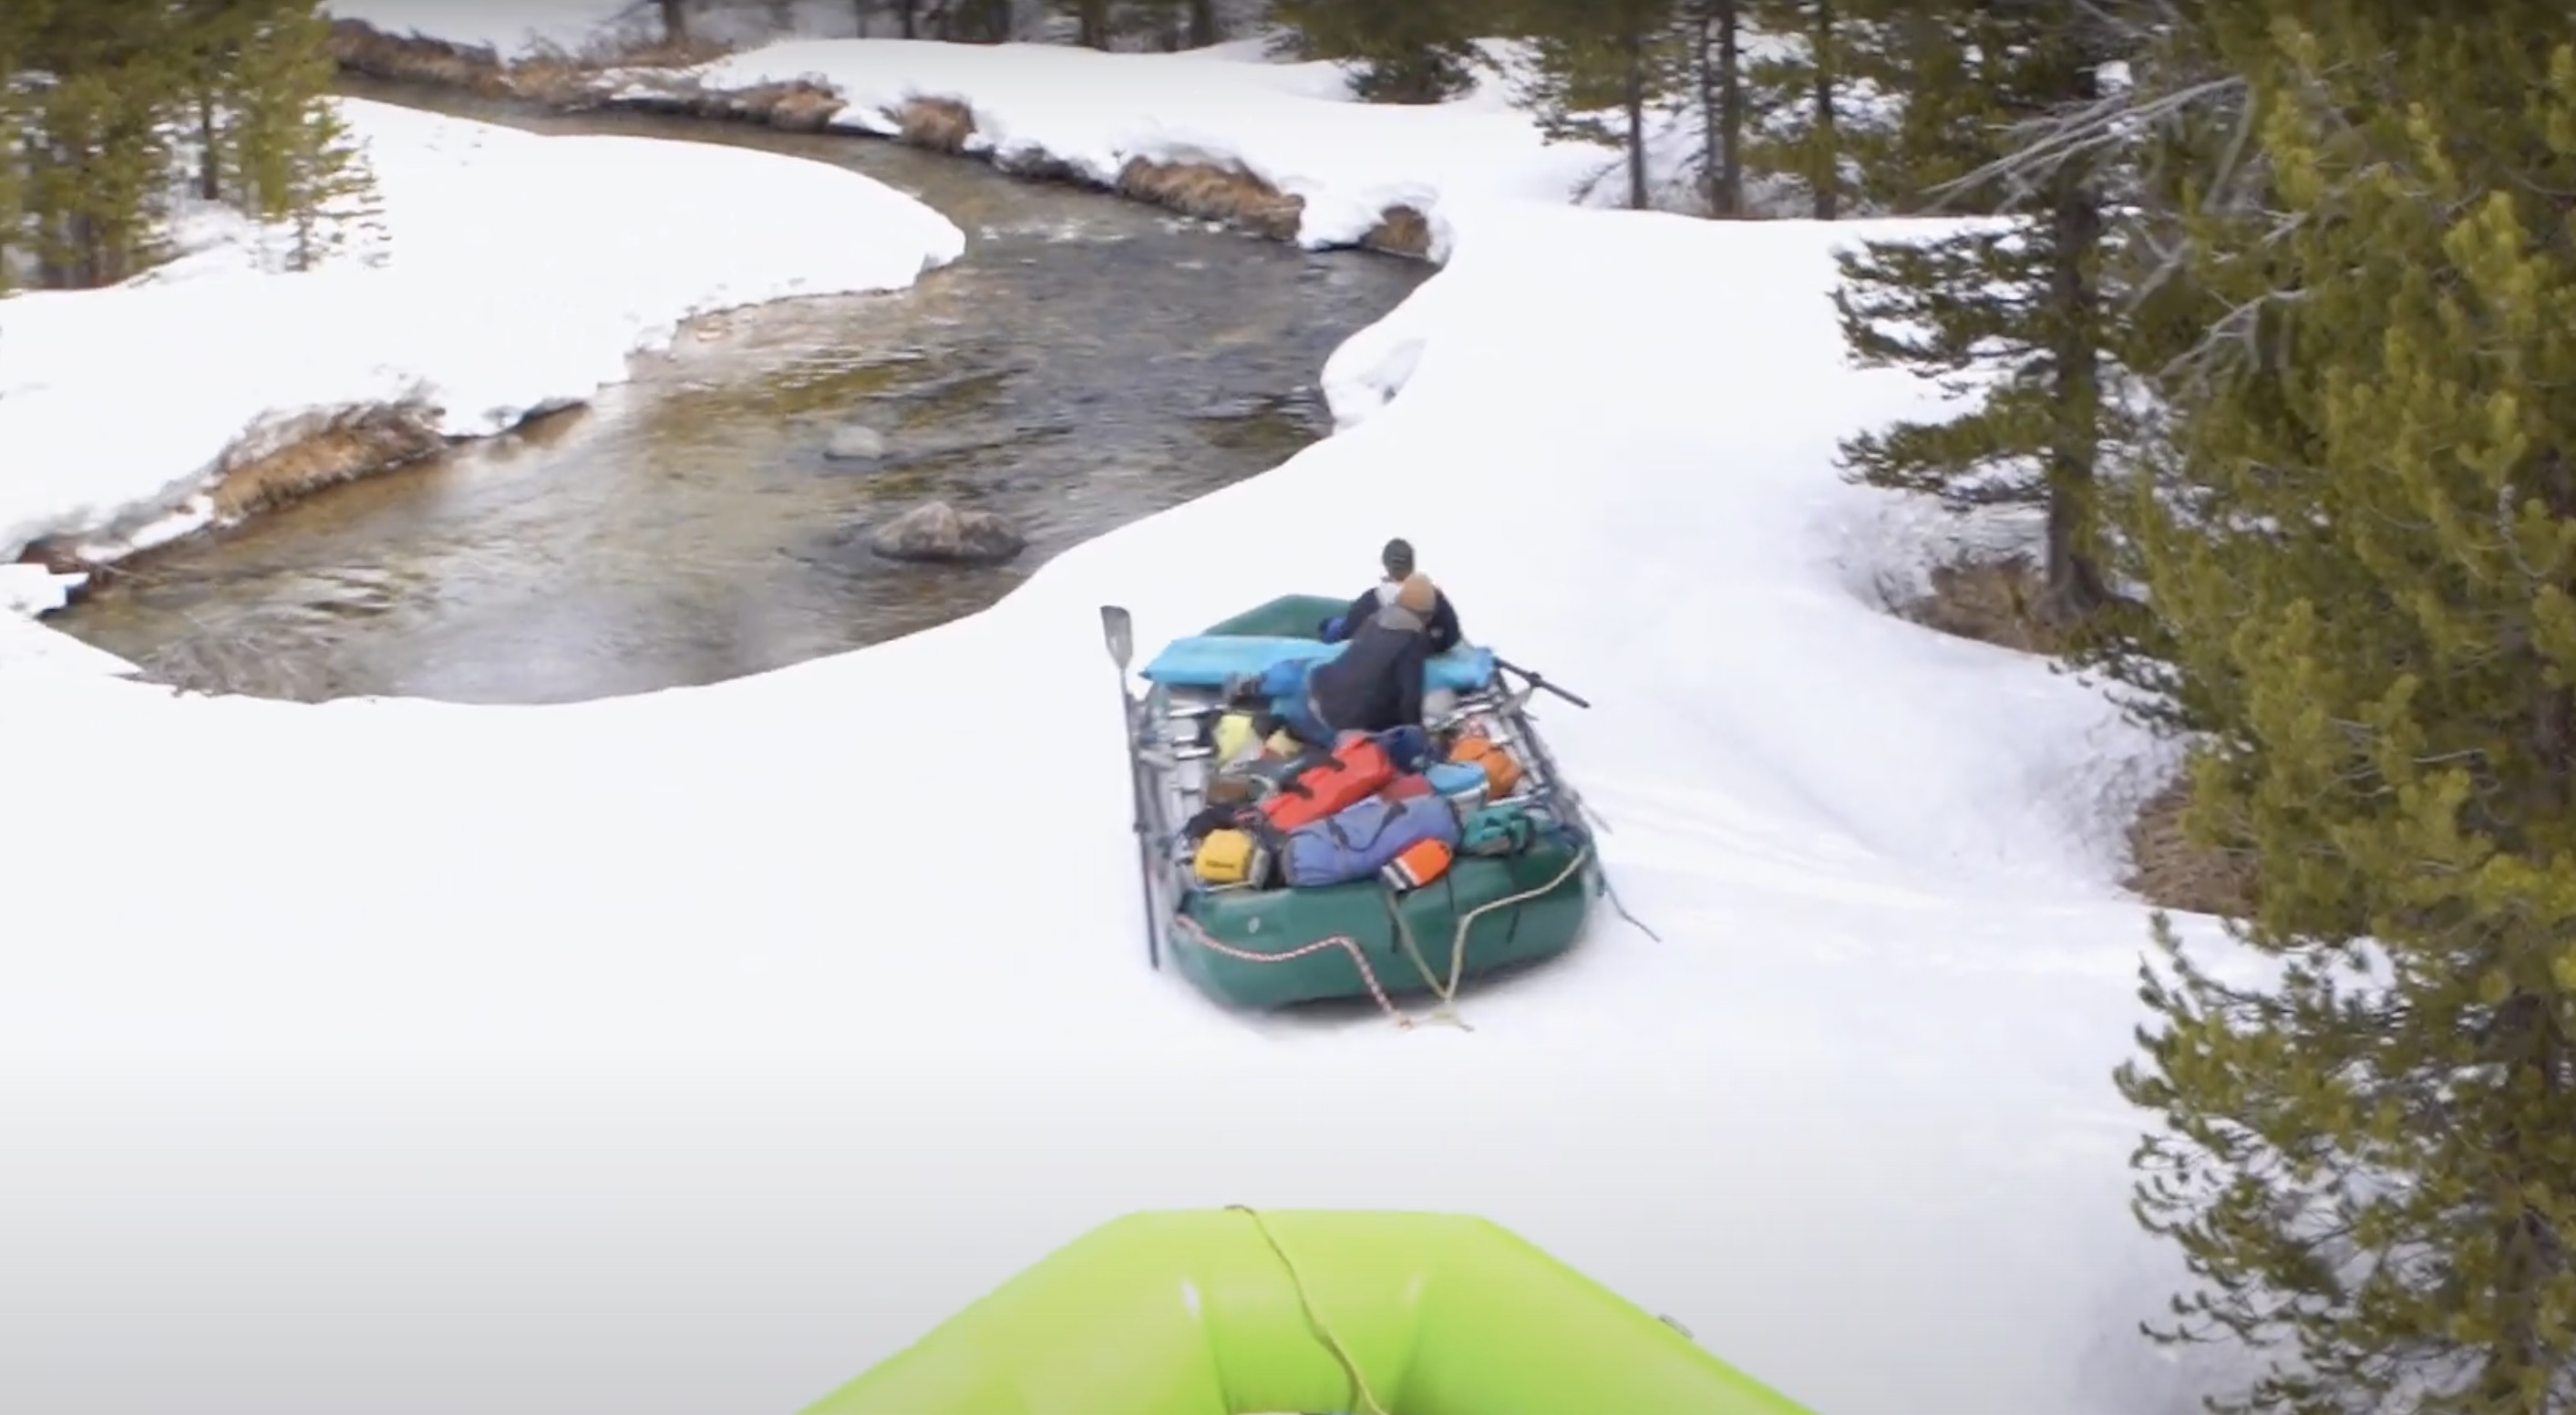 Float to Ski On the Middle Fork of the Salmon River = A Highly Entertaining Video